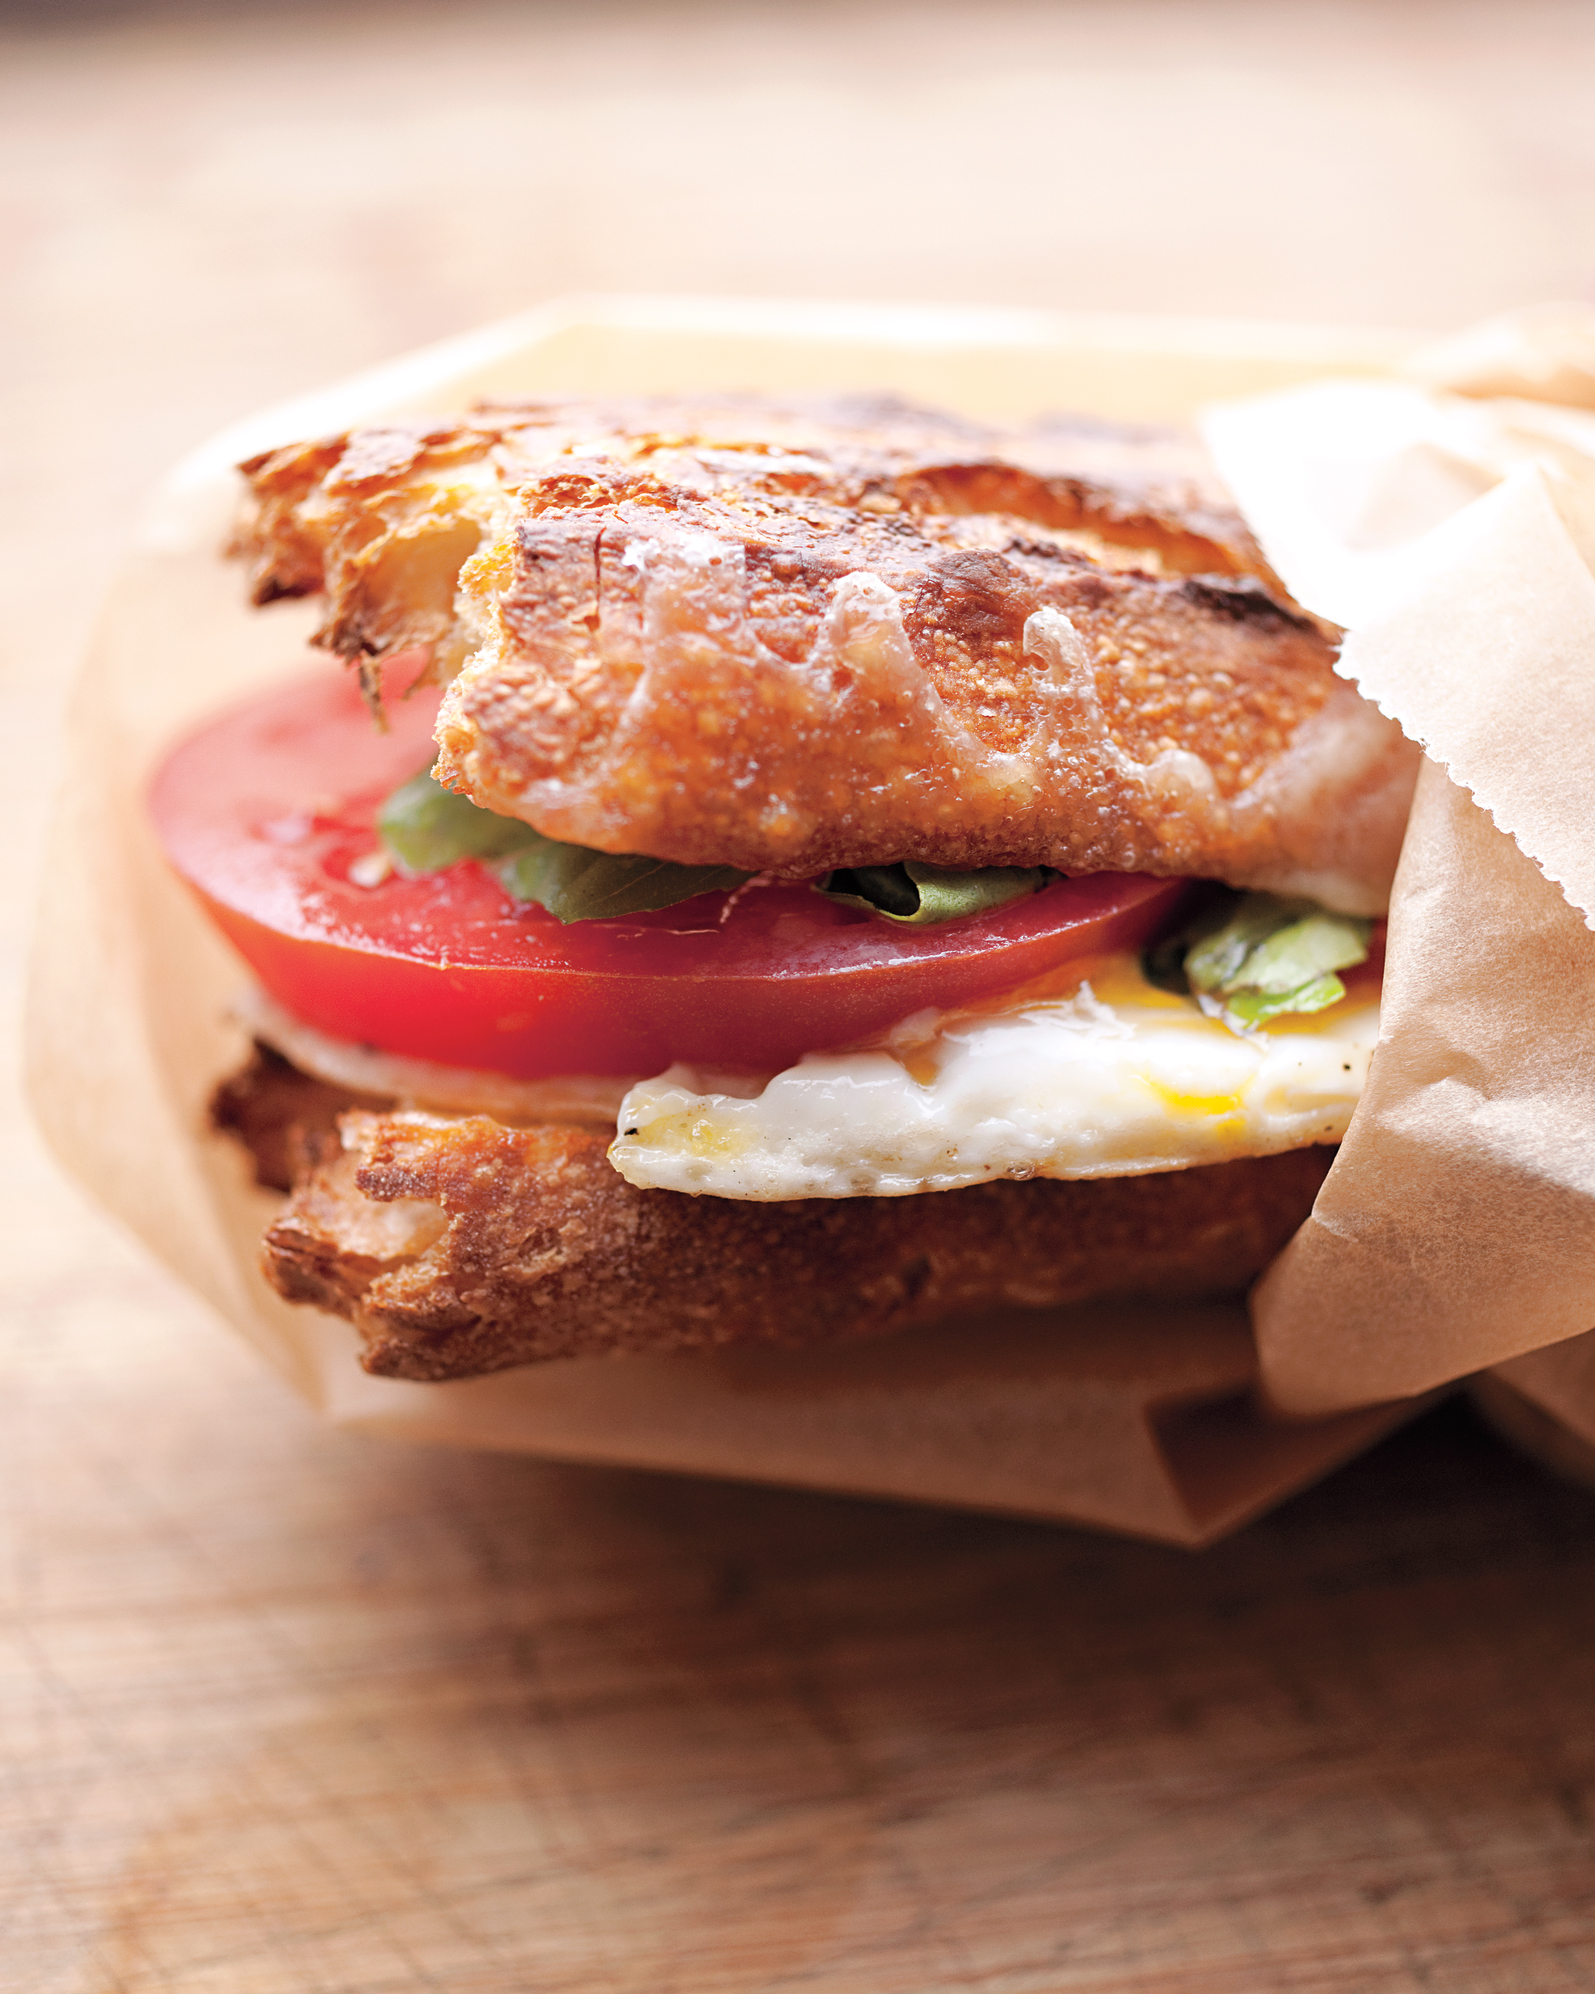 Egg-and-Tomato Breakfast Sandwich to Go